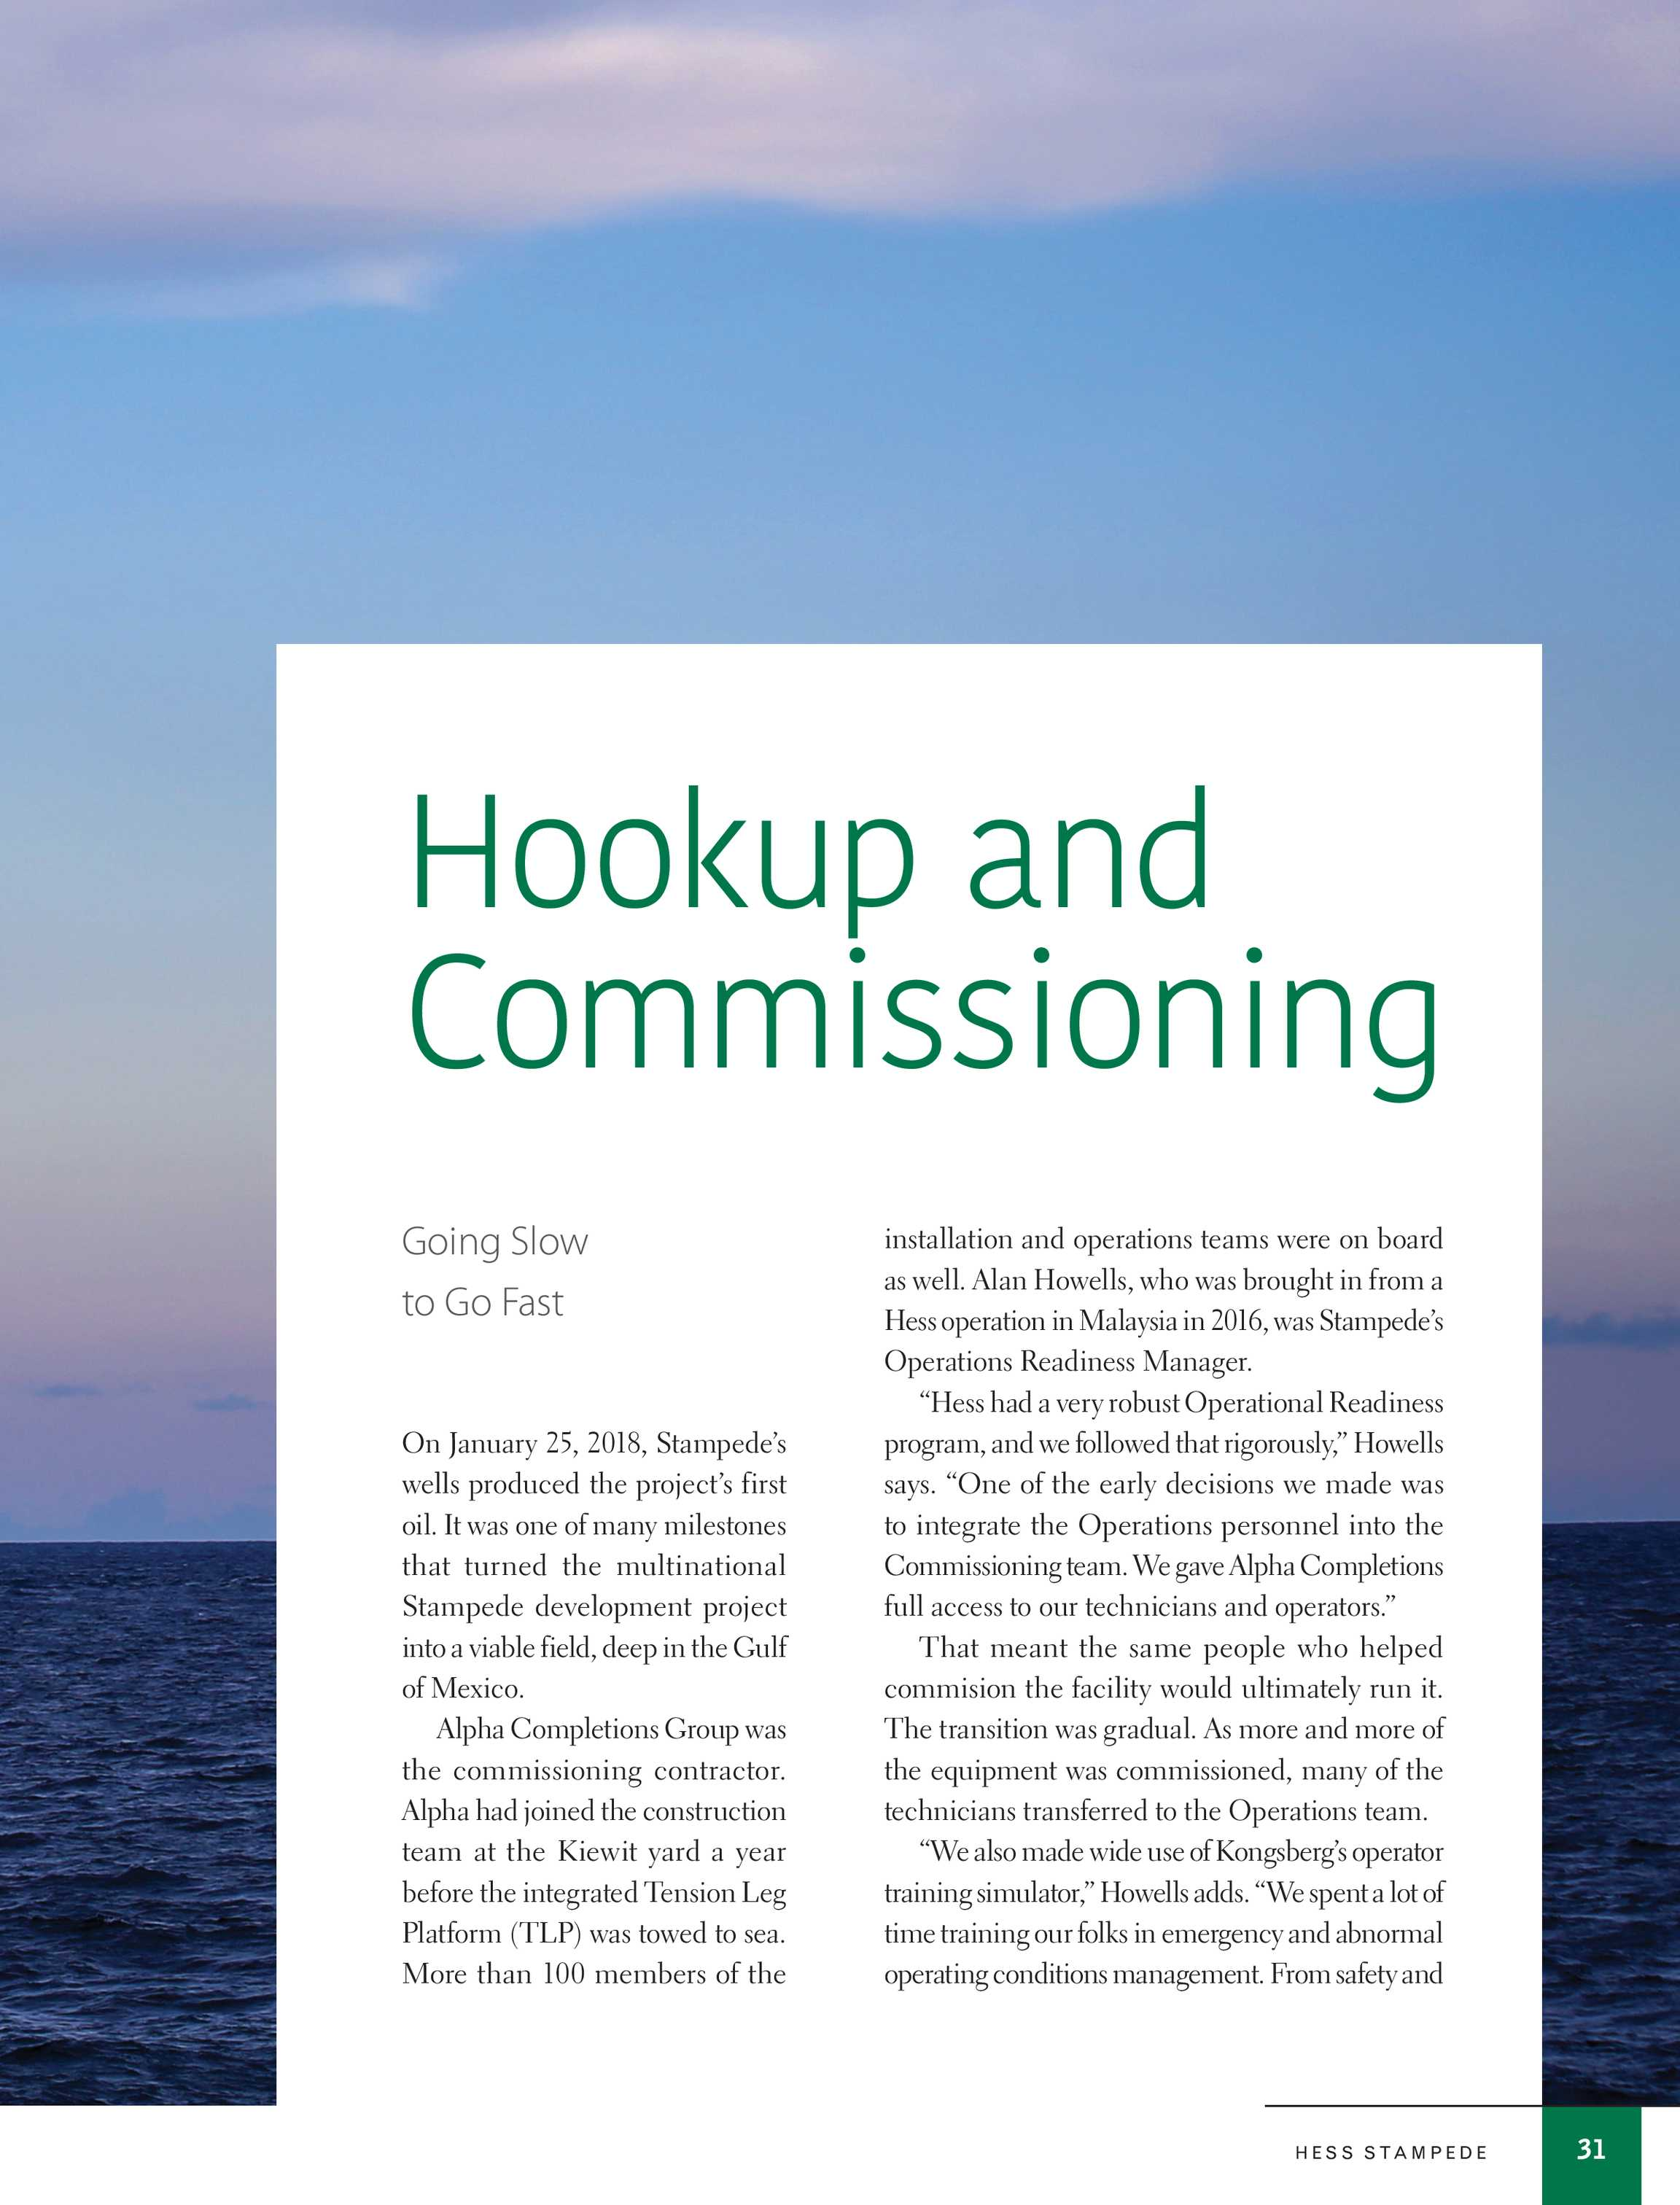 hook up and commissioning process